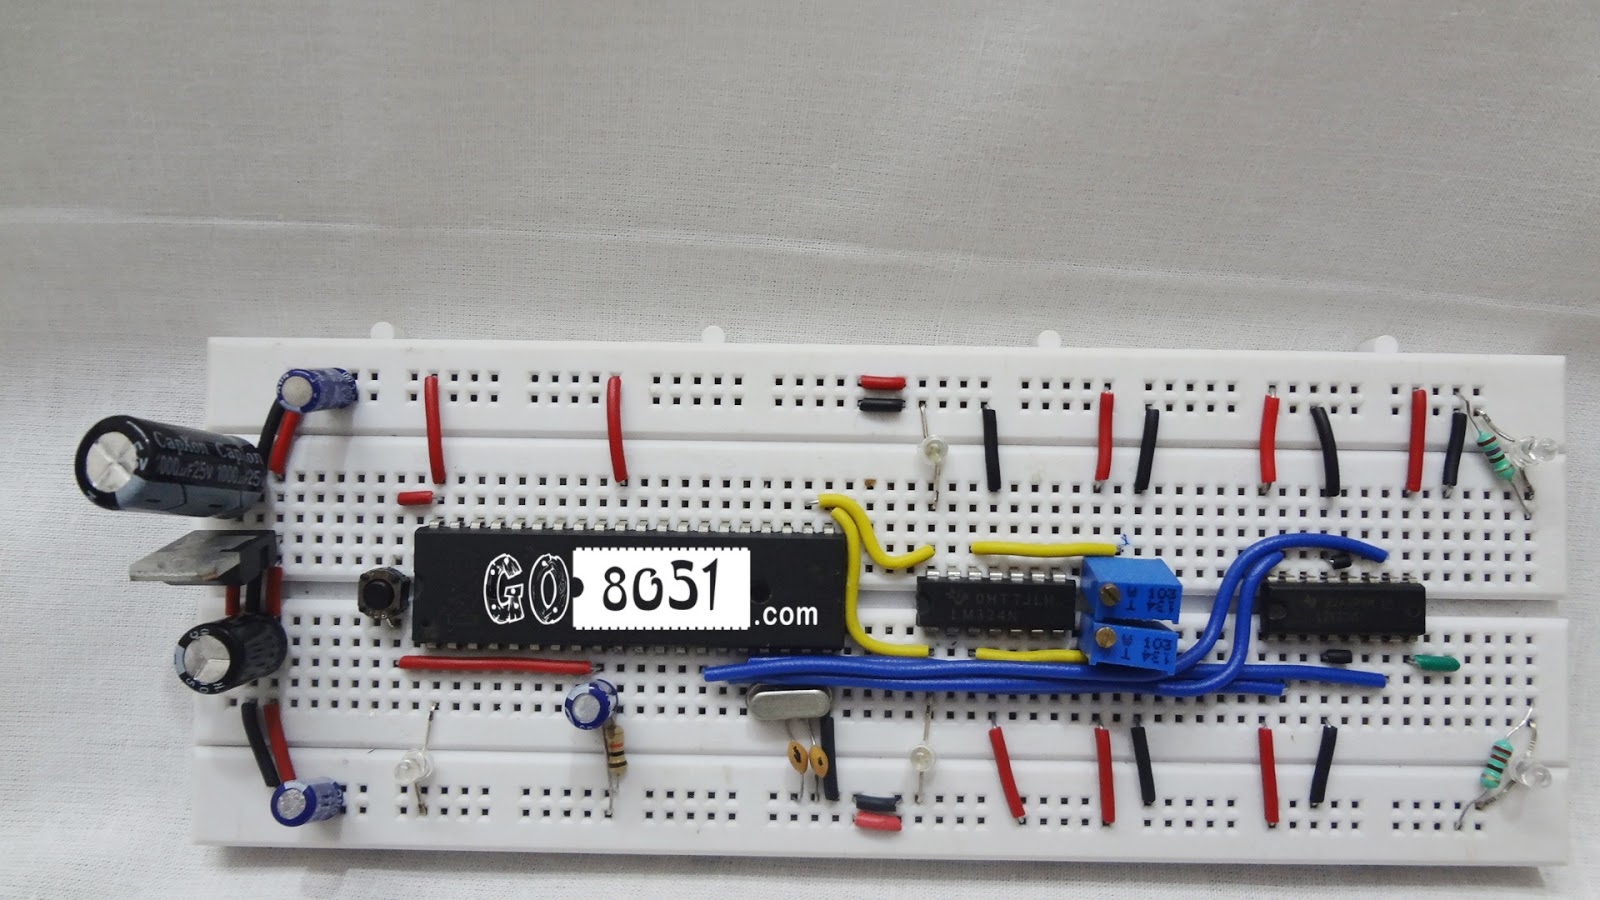 Chapter 74 Interfacing L293d Motor Driver With 8051 Microcontroller Reset Circuit 31 This Is The Closer Look Of Connection Just Cross Check Your